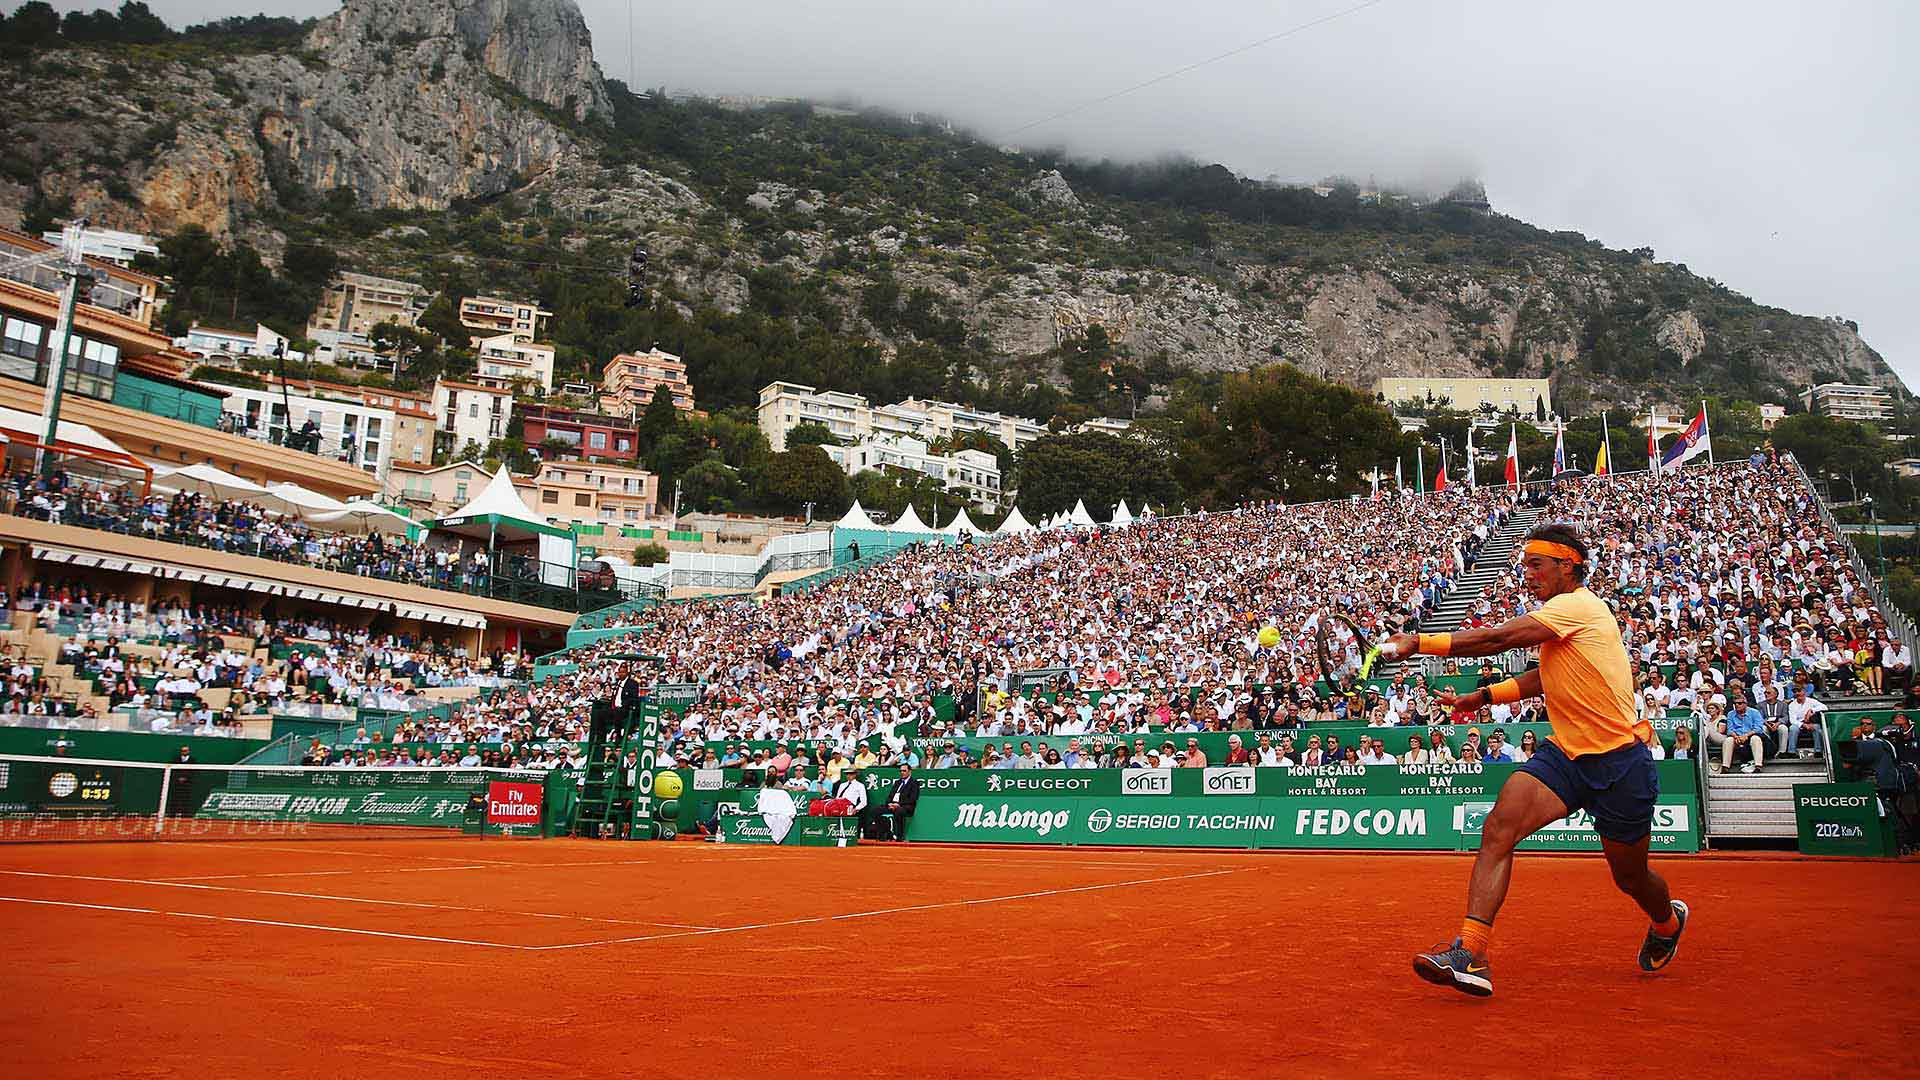 nadal monte carlo 2016 sunday 2